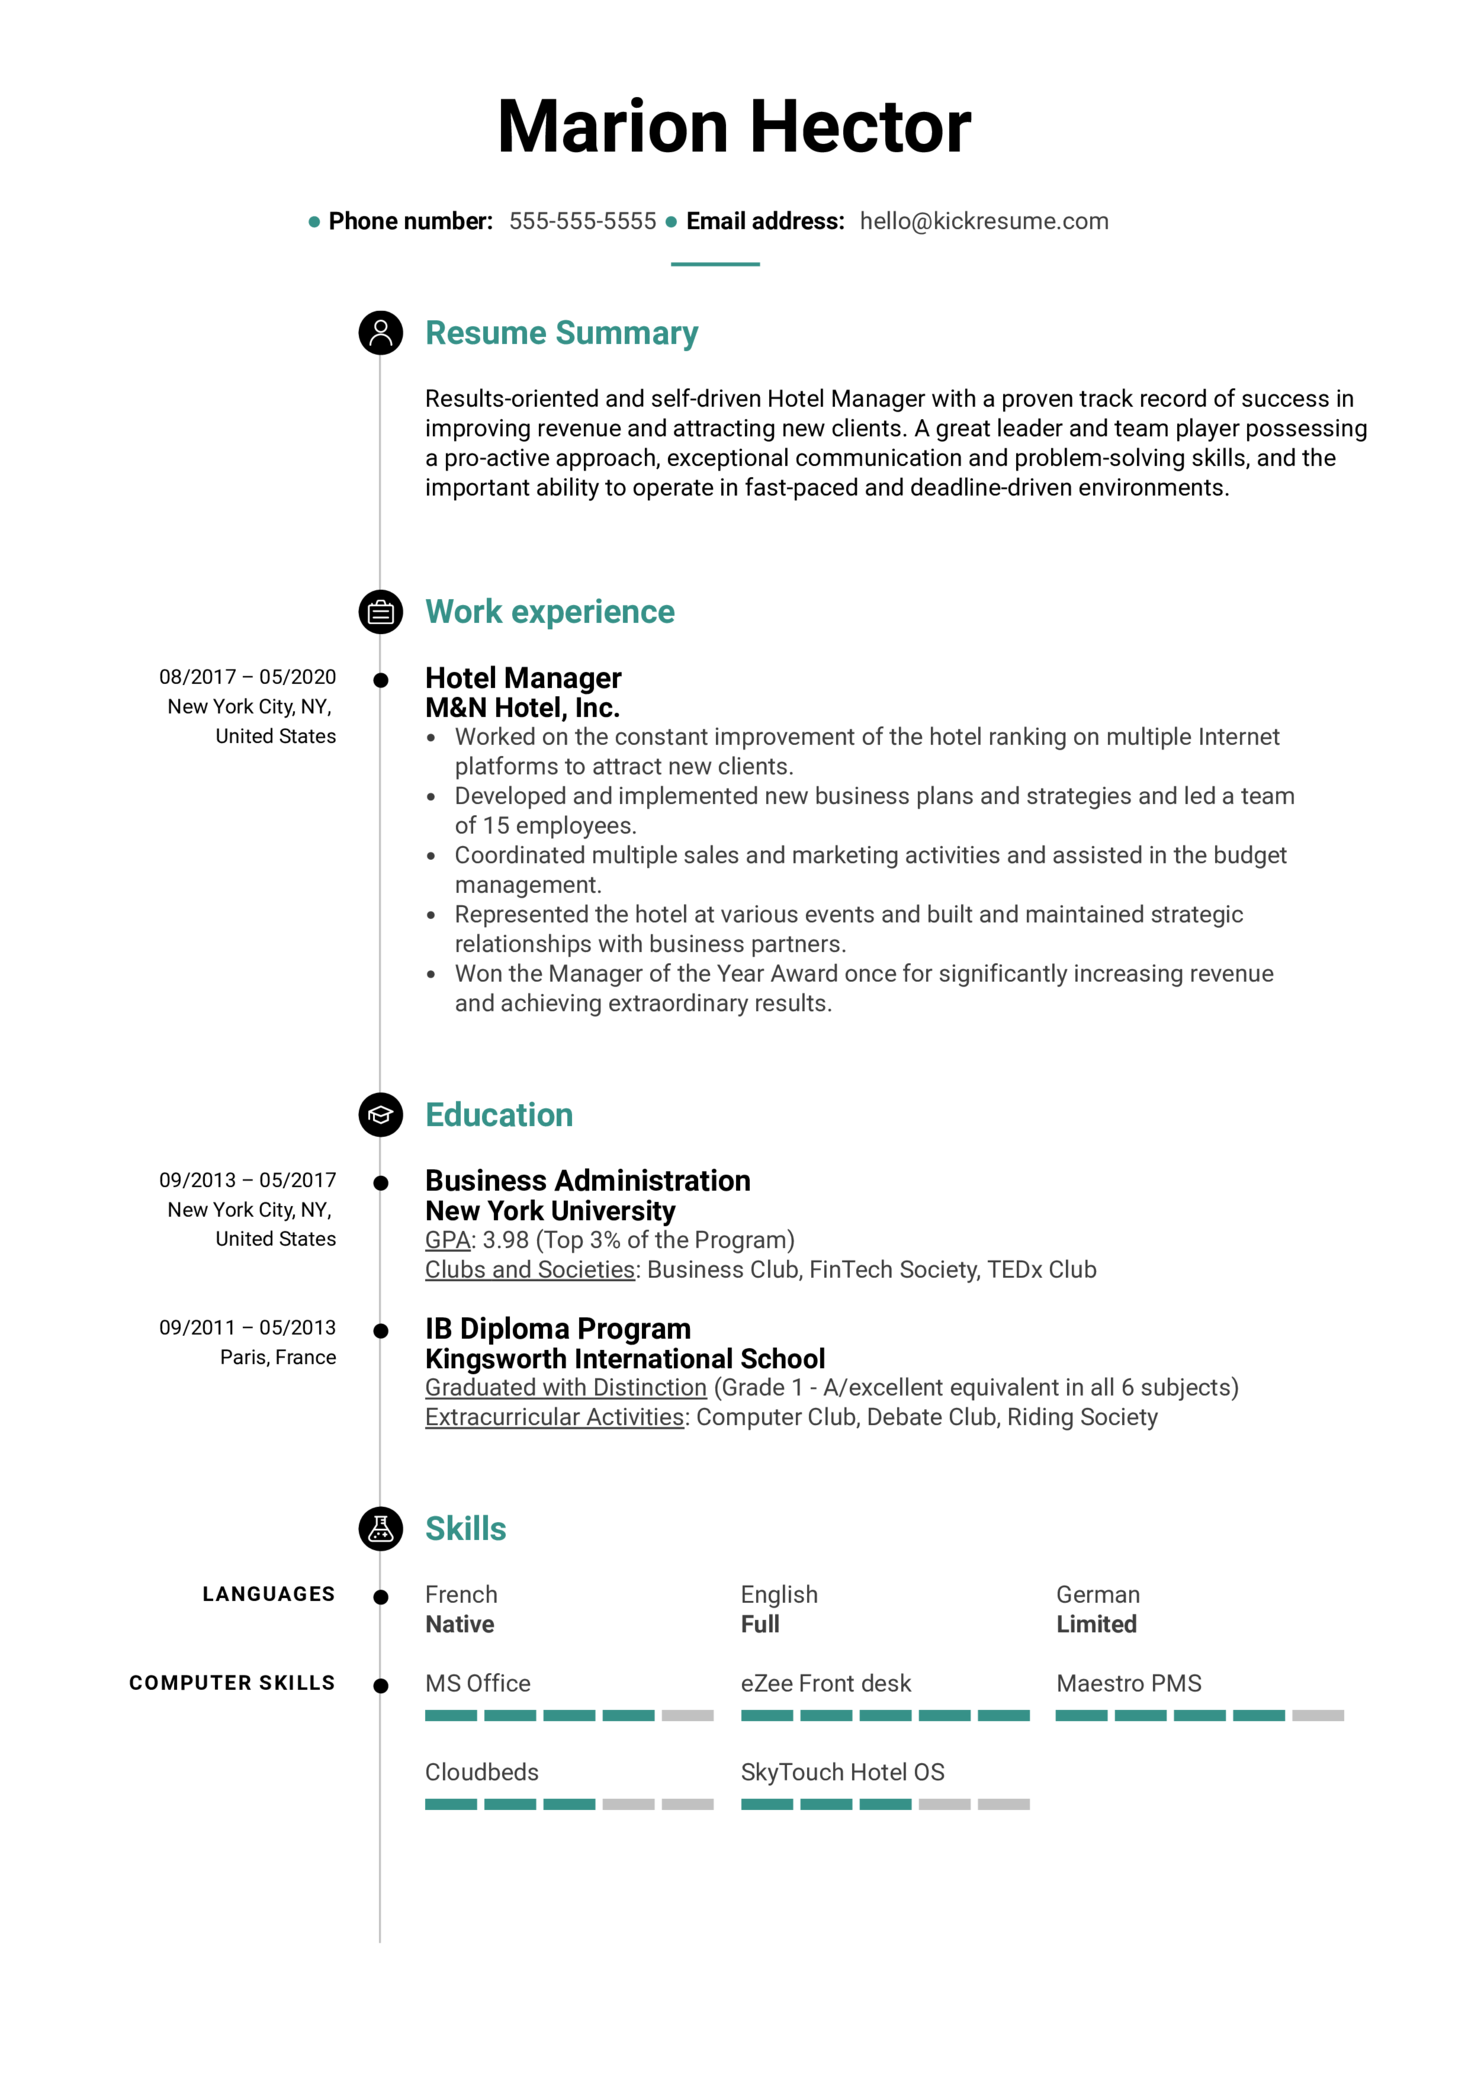 Free Hotel Manager Resume Sample (Part 1)